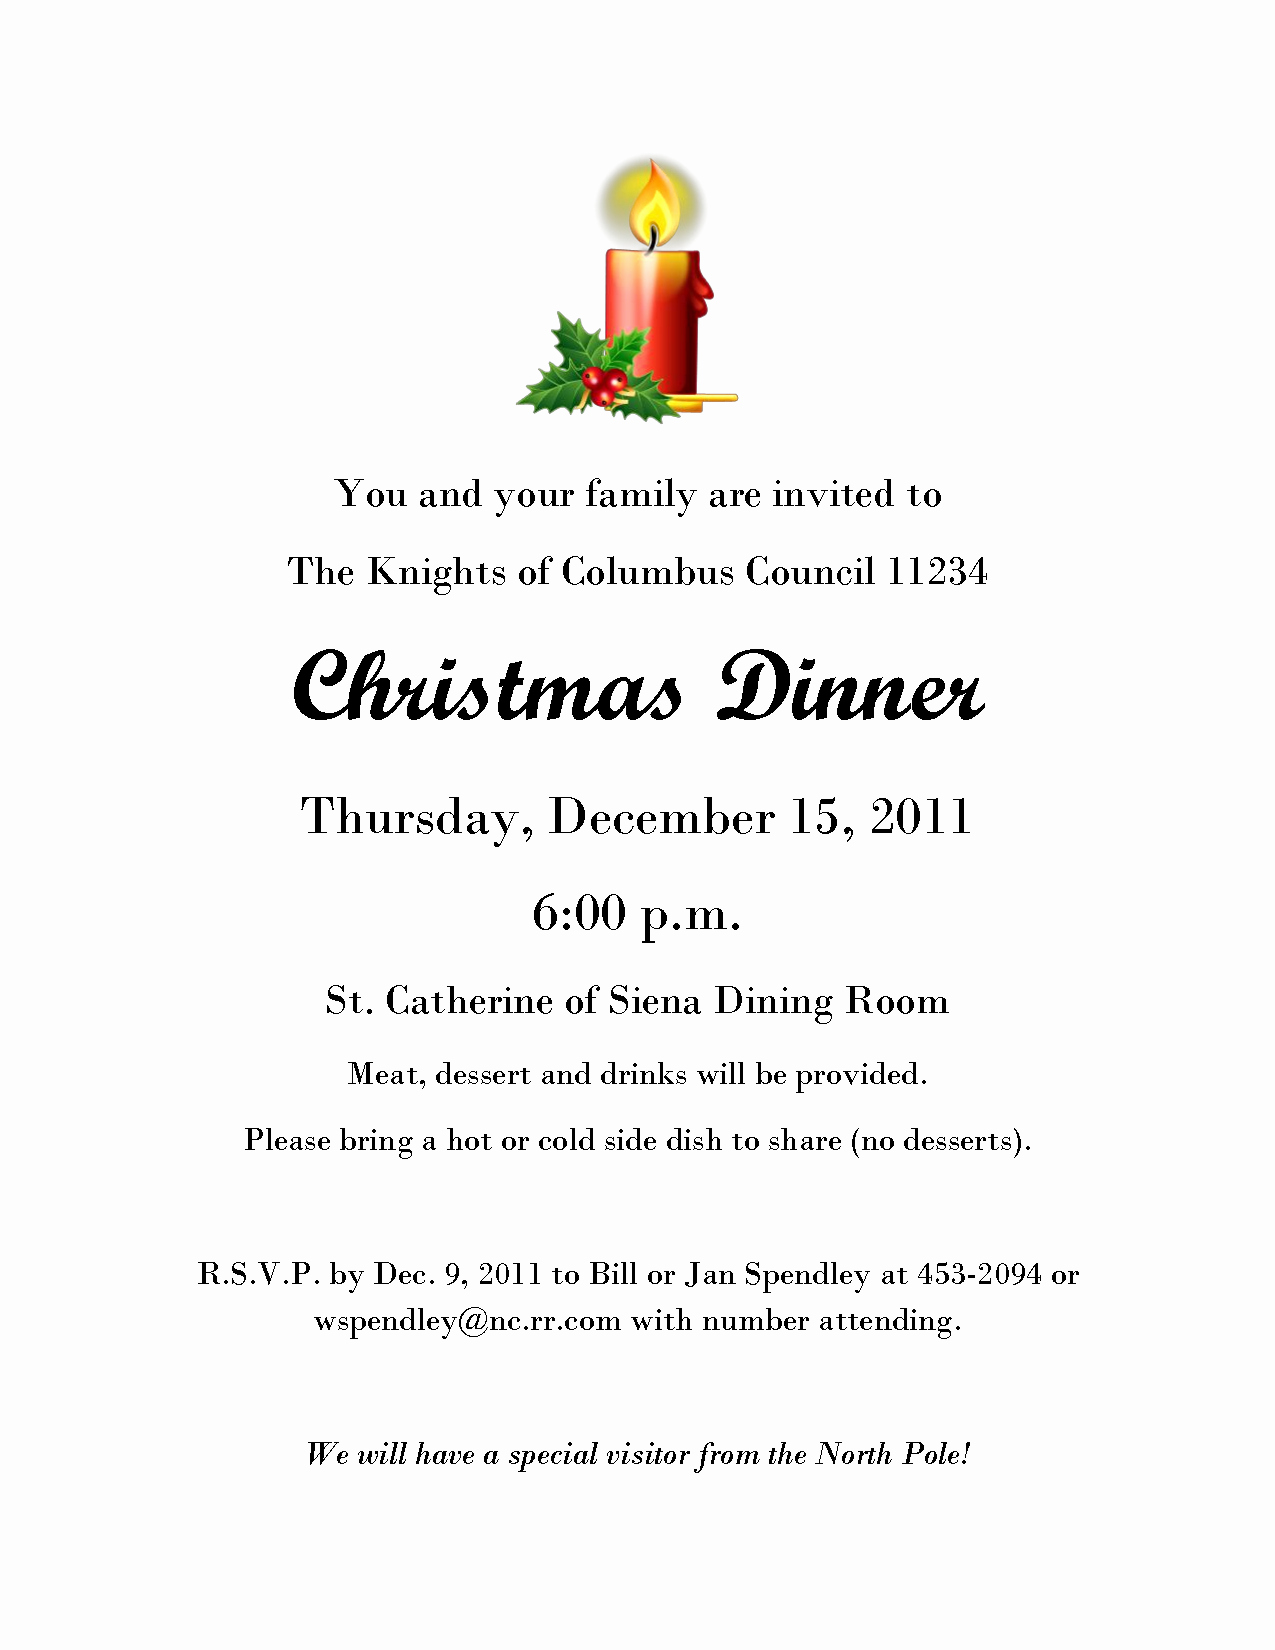 Dinner Invitation Email Template Inspirational Christmas Dinner Invitation Email Template – Fun for